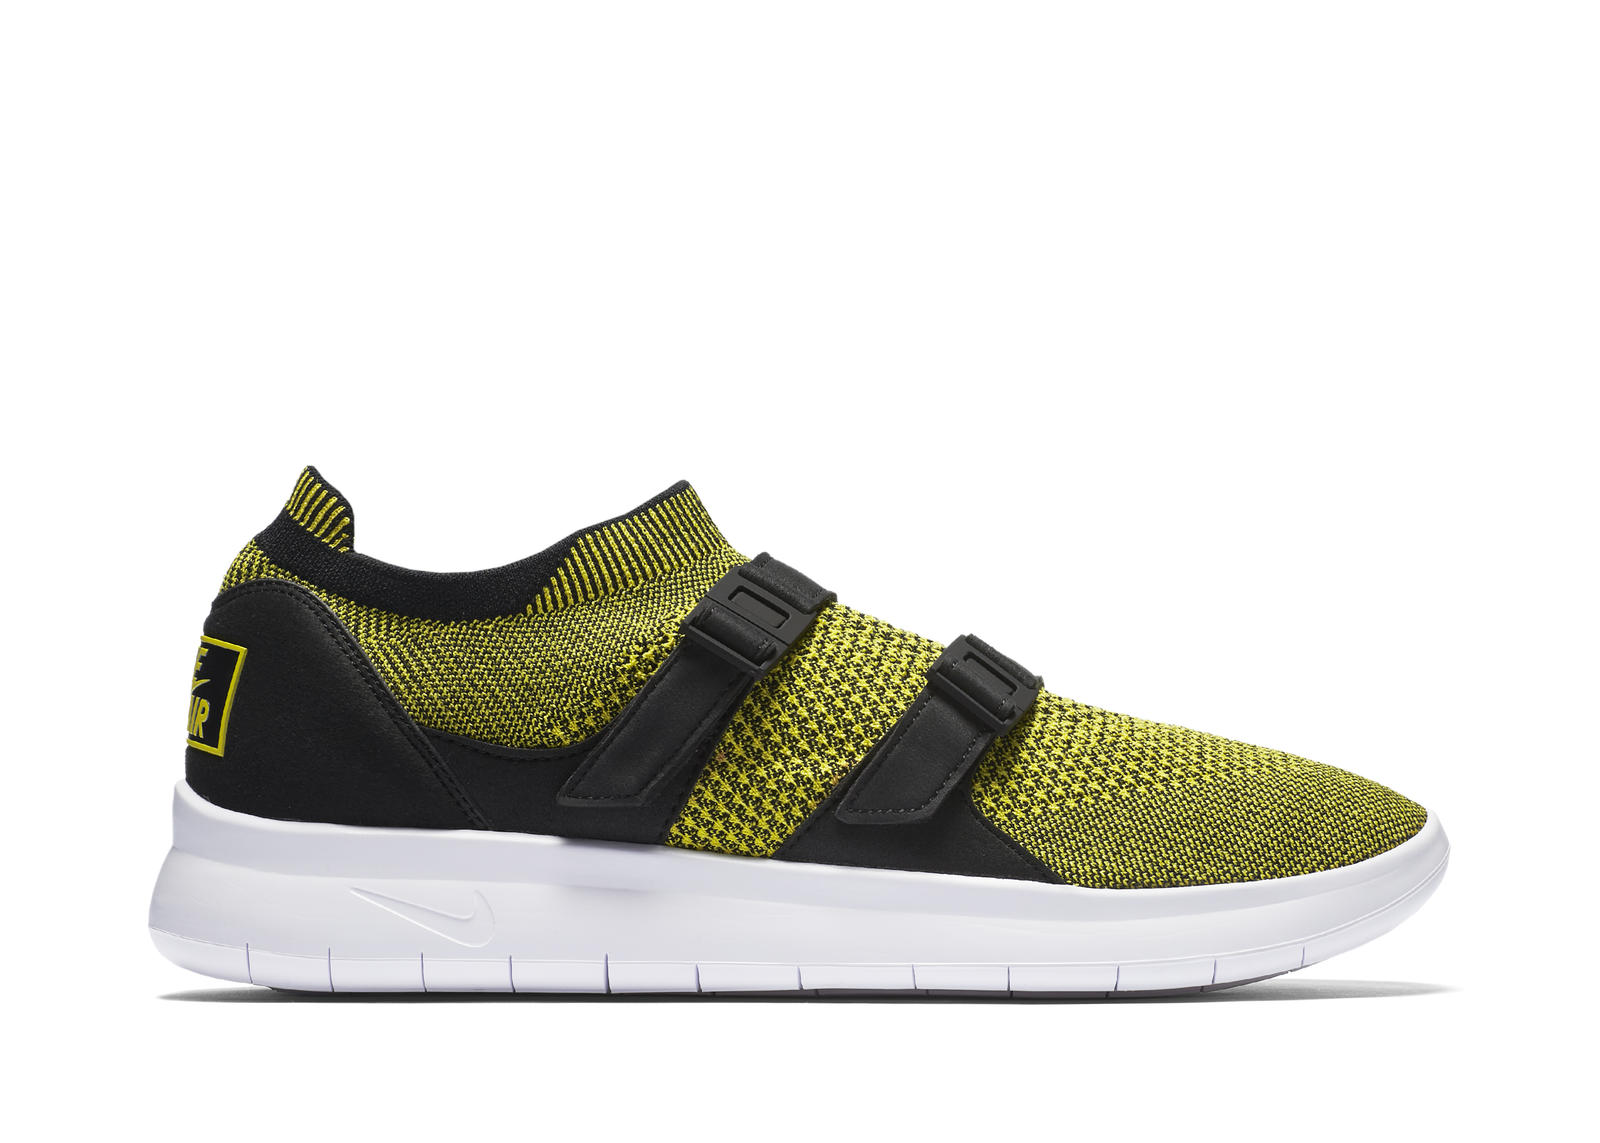 4d38a545937 The Nike Air Sock Racer Ultra Flyknit will be available from select  retailers and Nike.com beginning April 27. Check out some images below.